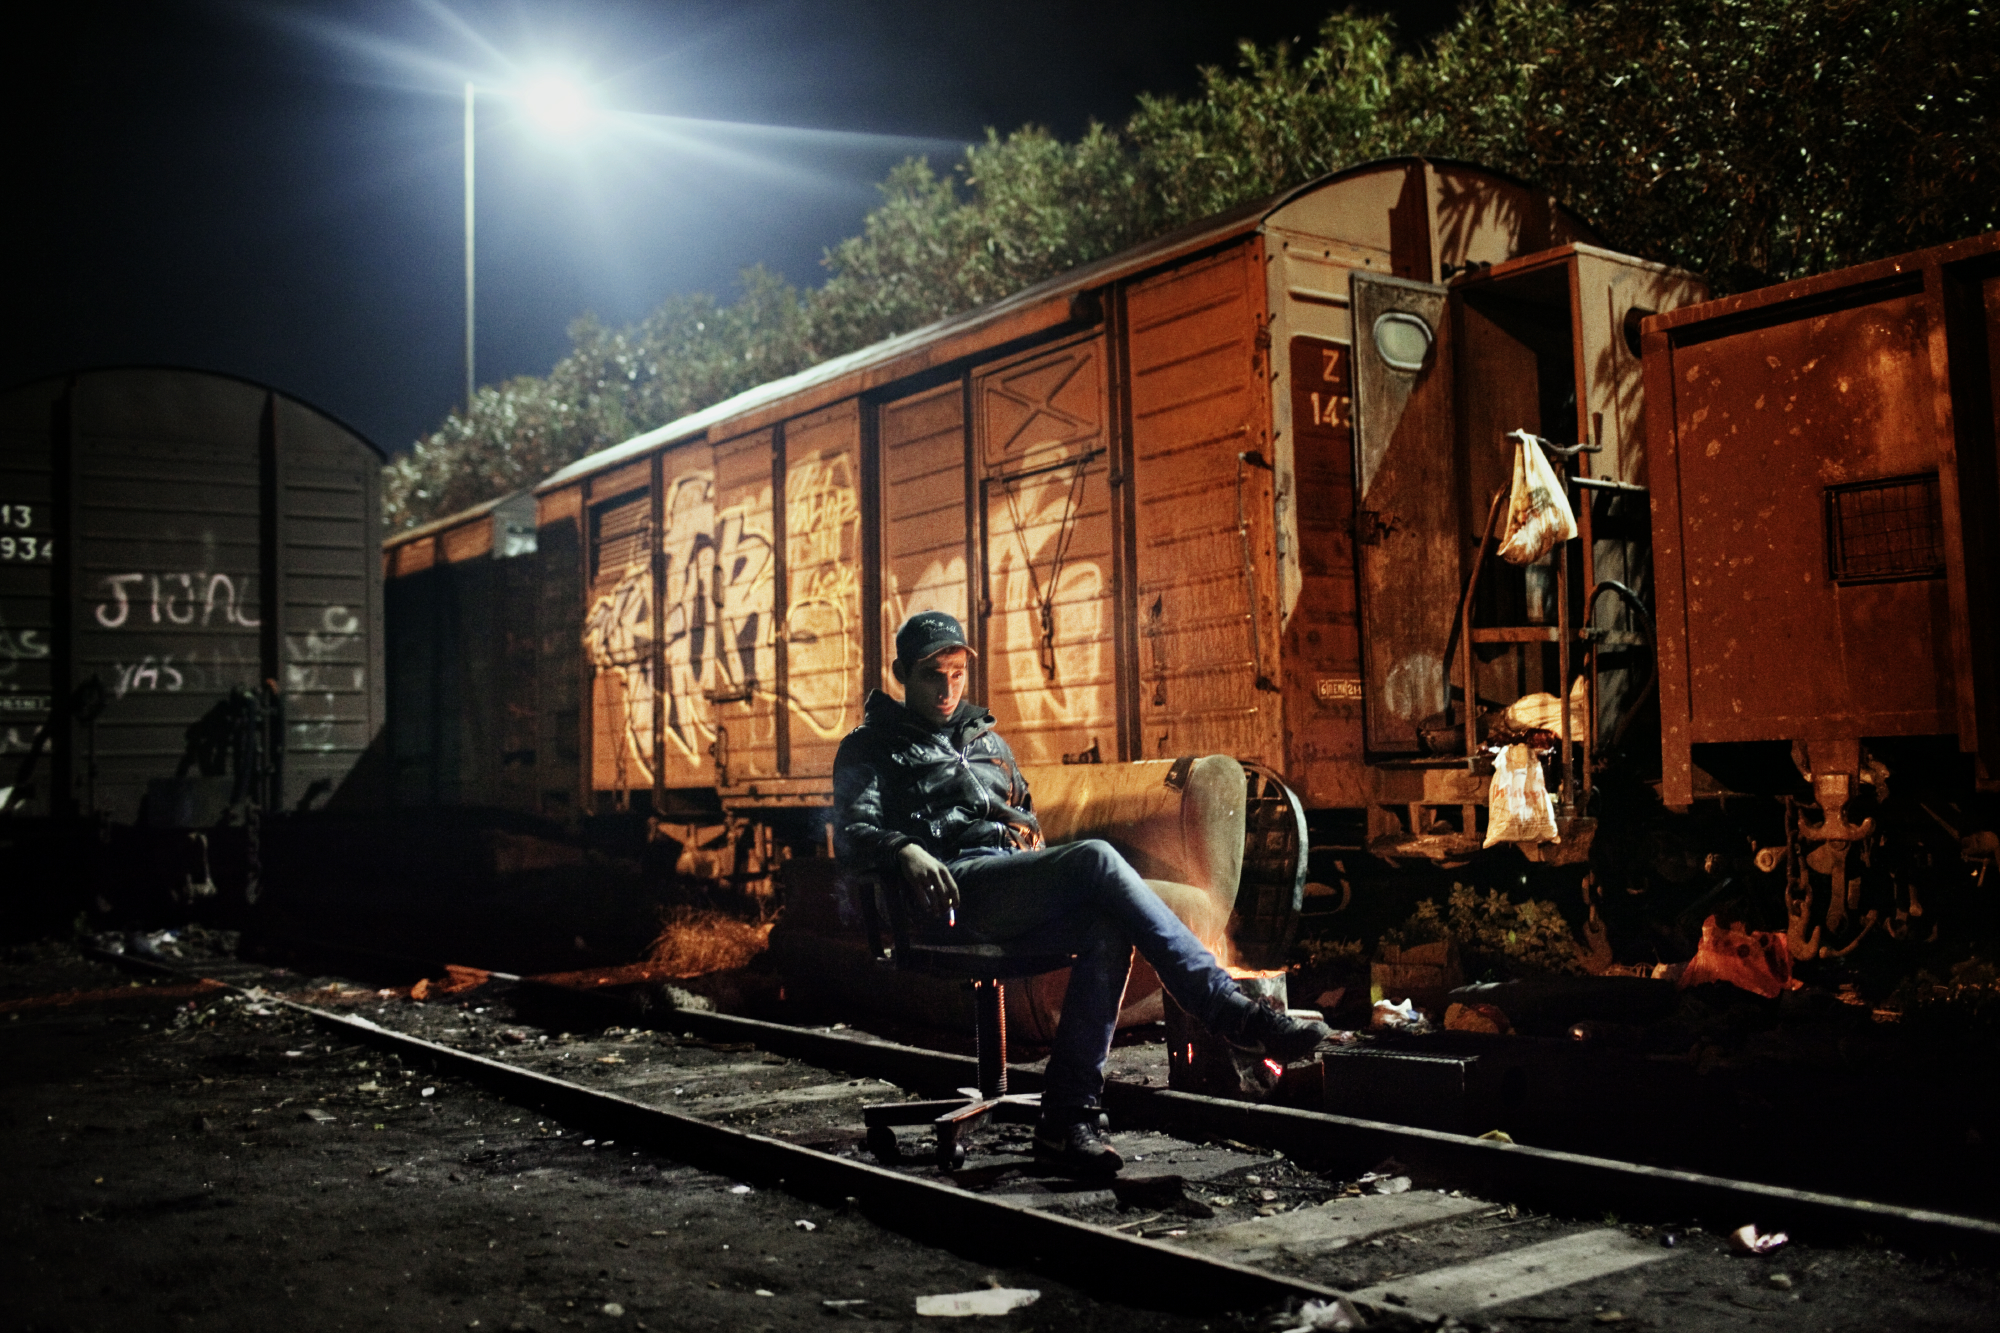 17-year old Ali from Algeria lives in the old train station of Corinth, Greece. He hopes to be able to board a boat to Western Europe.